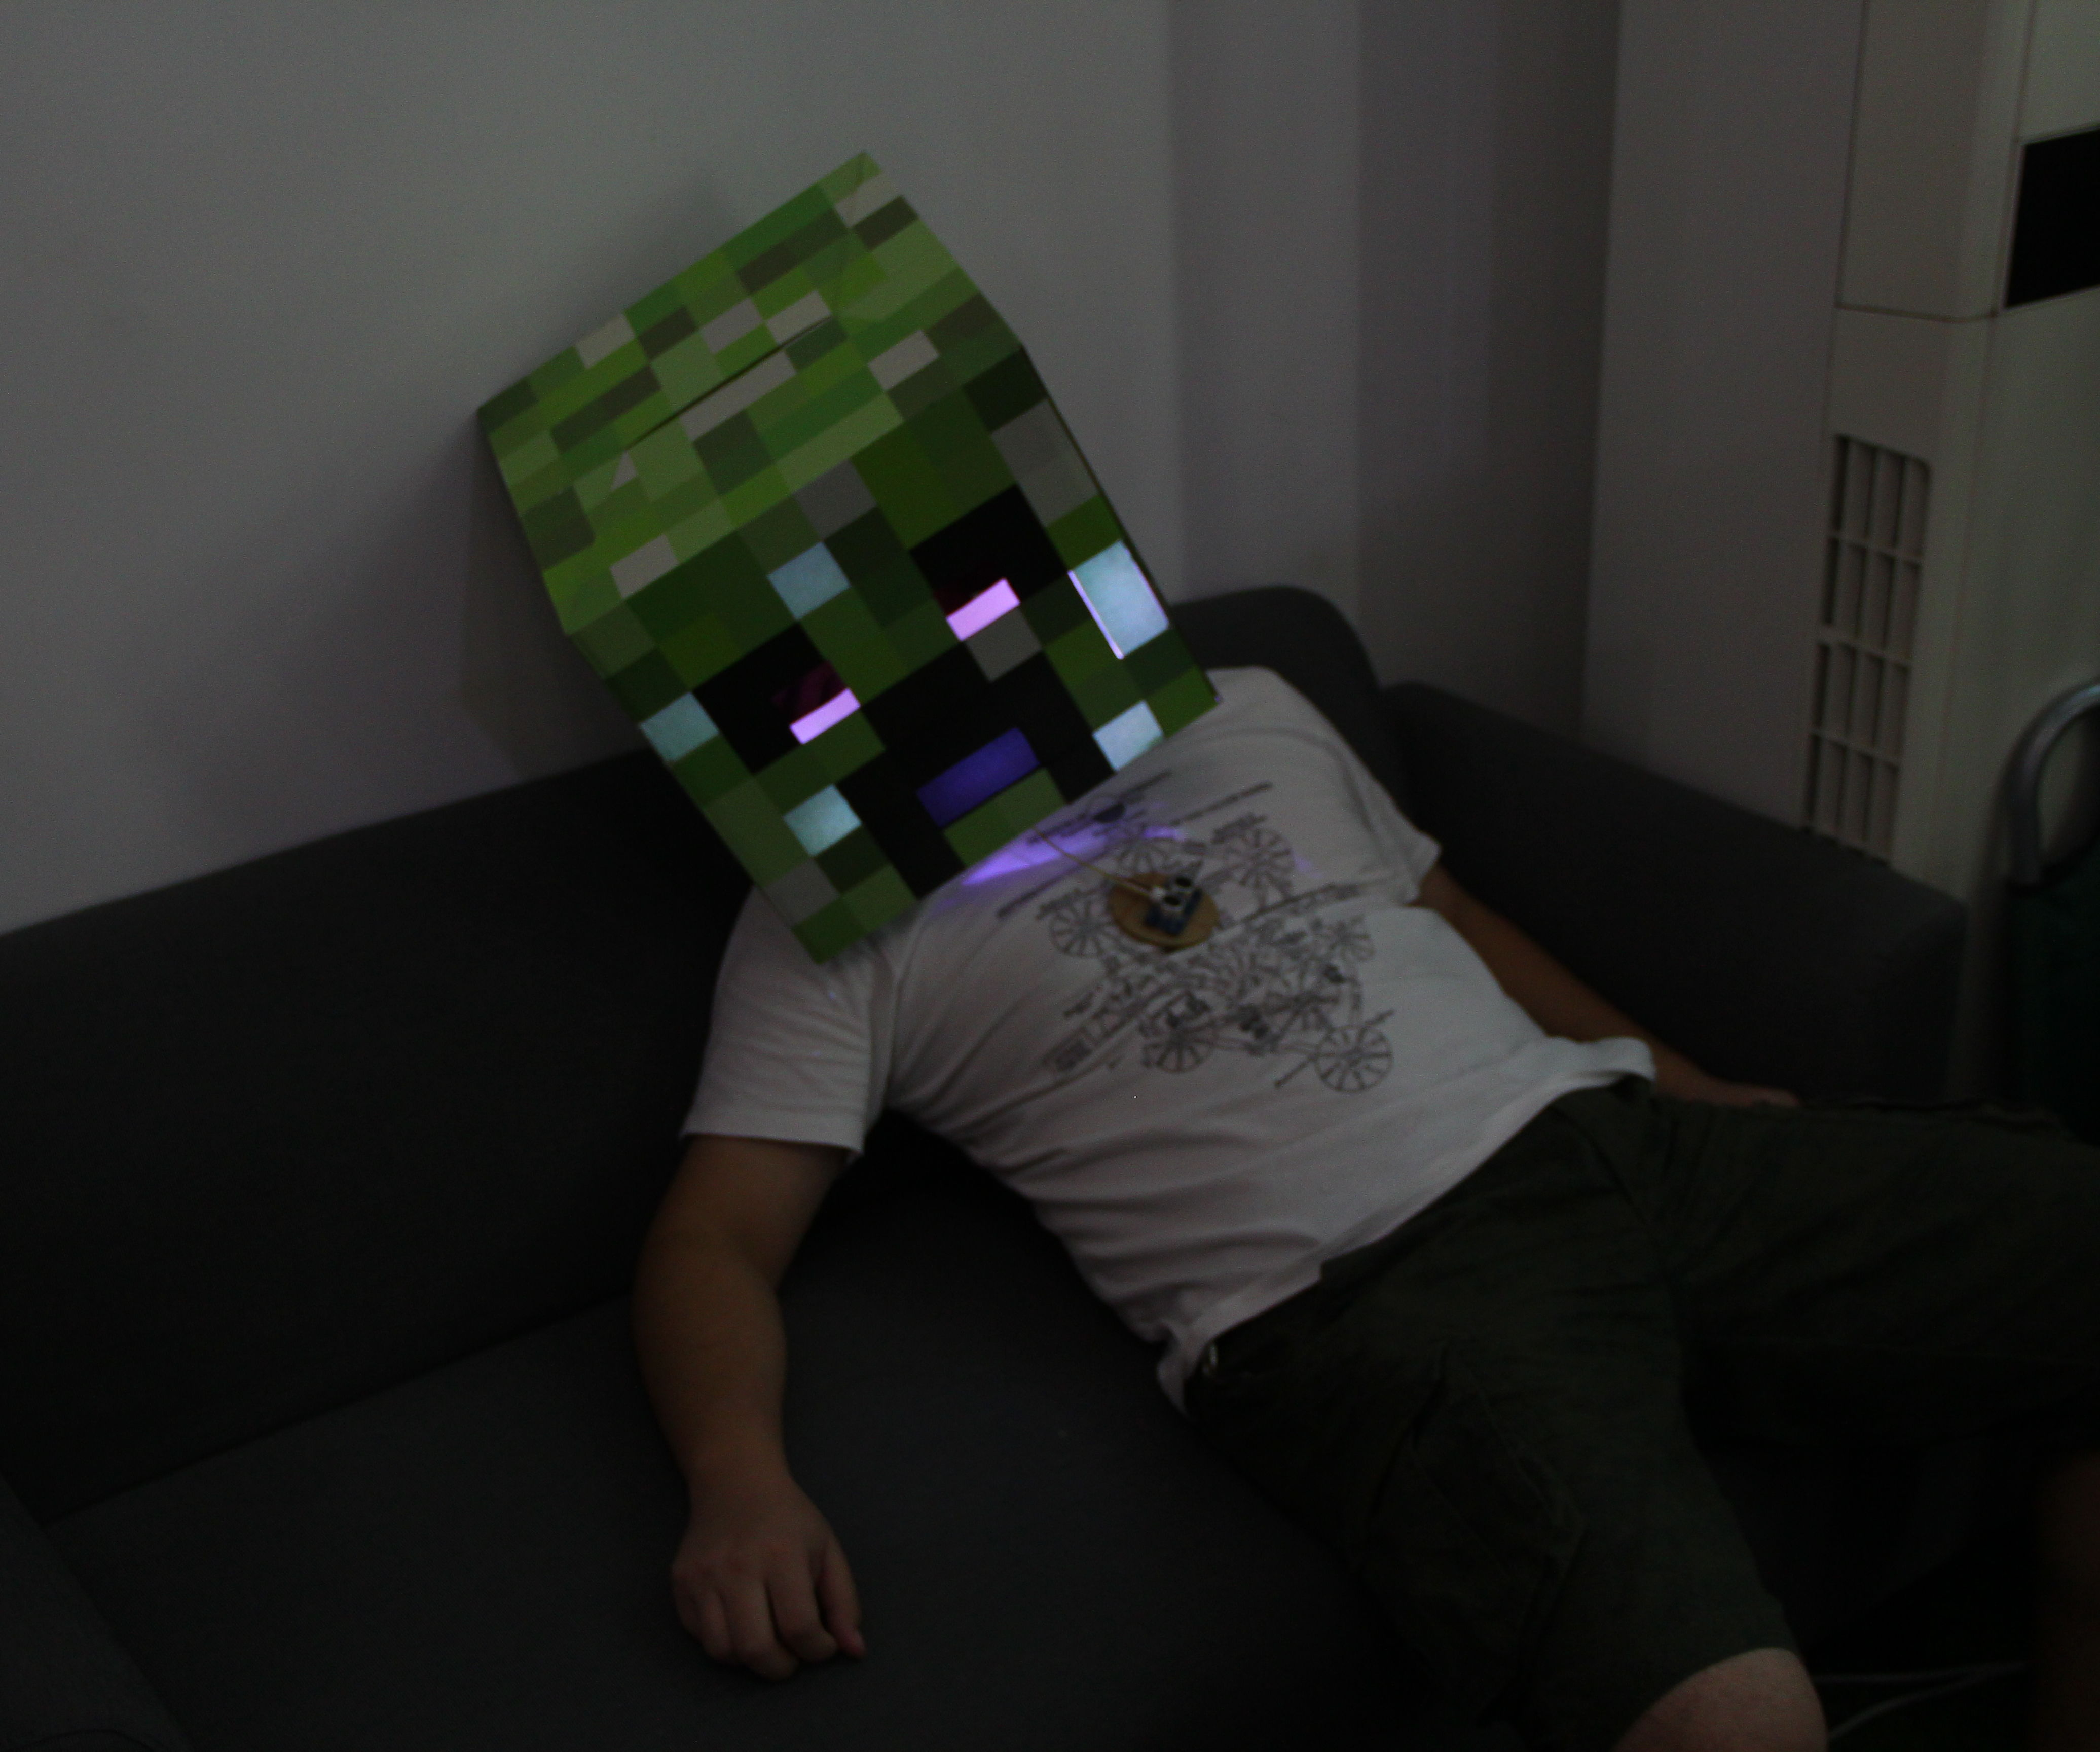 How to Make a Vivid Flashing Minecraft Creeper